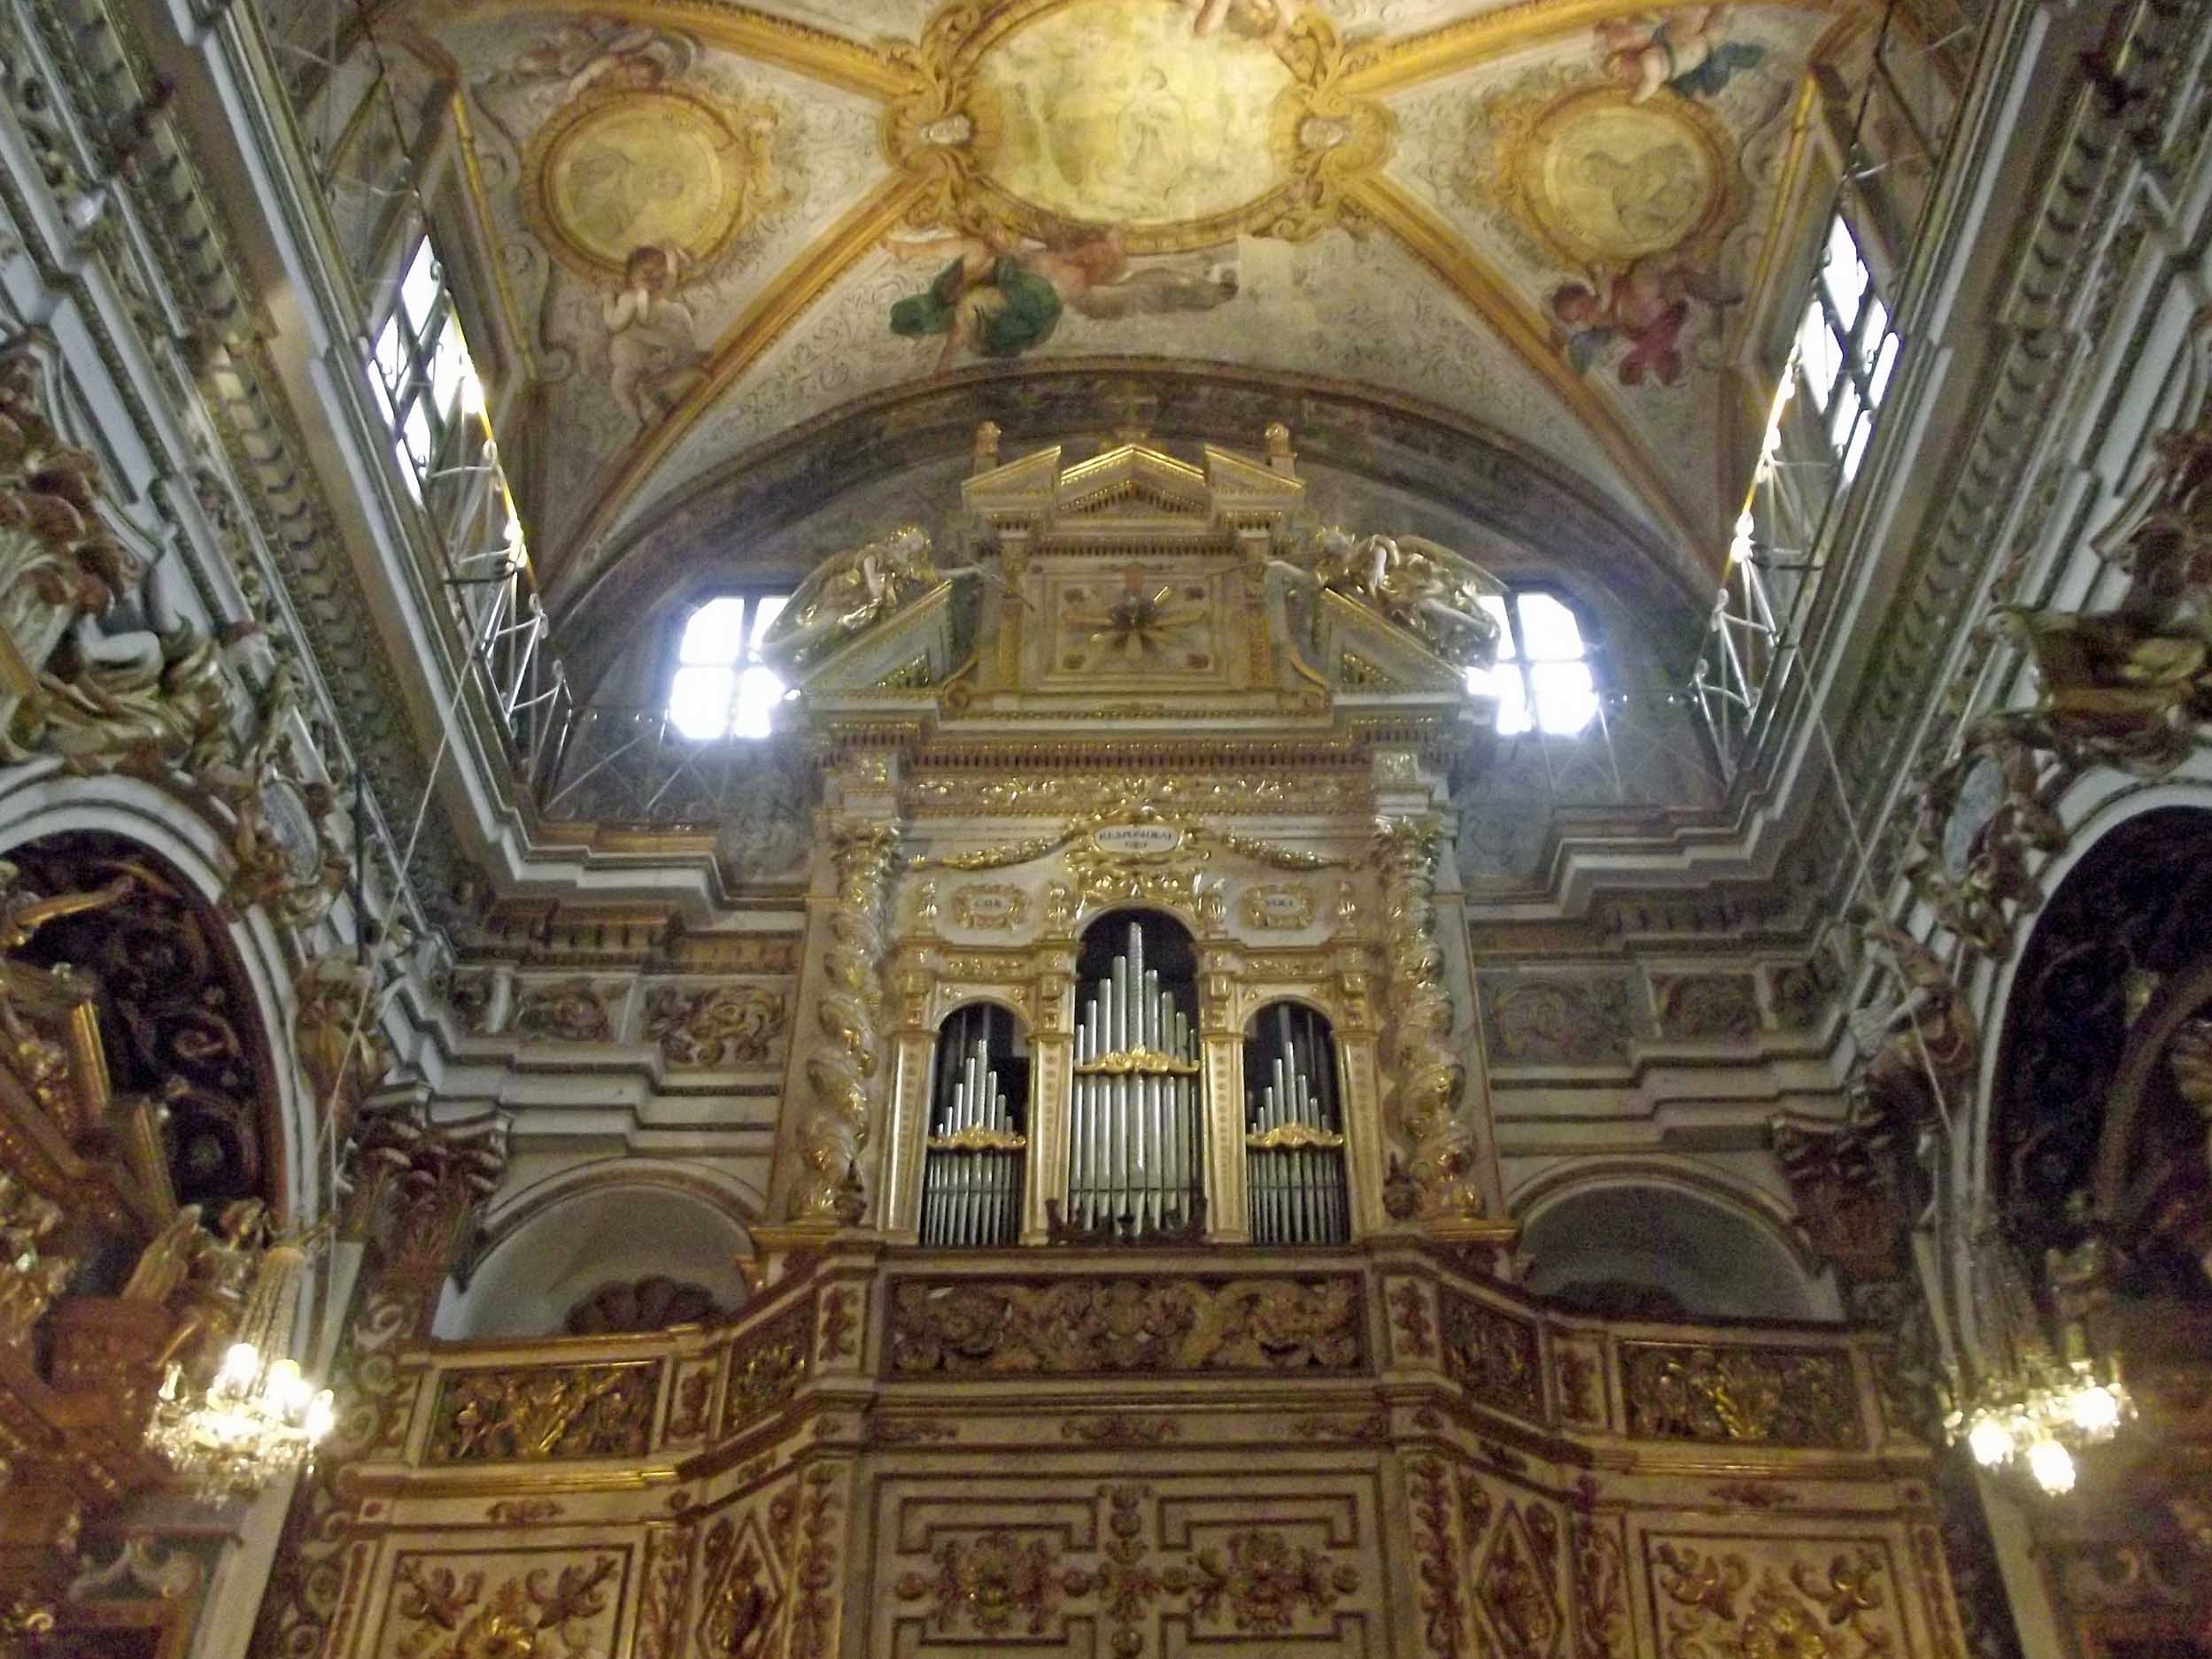 Chruch organ and ornate ceiling above